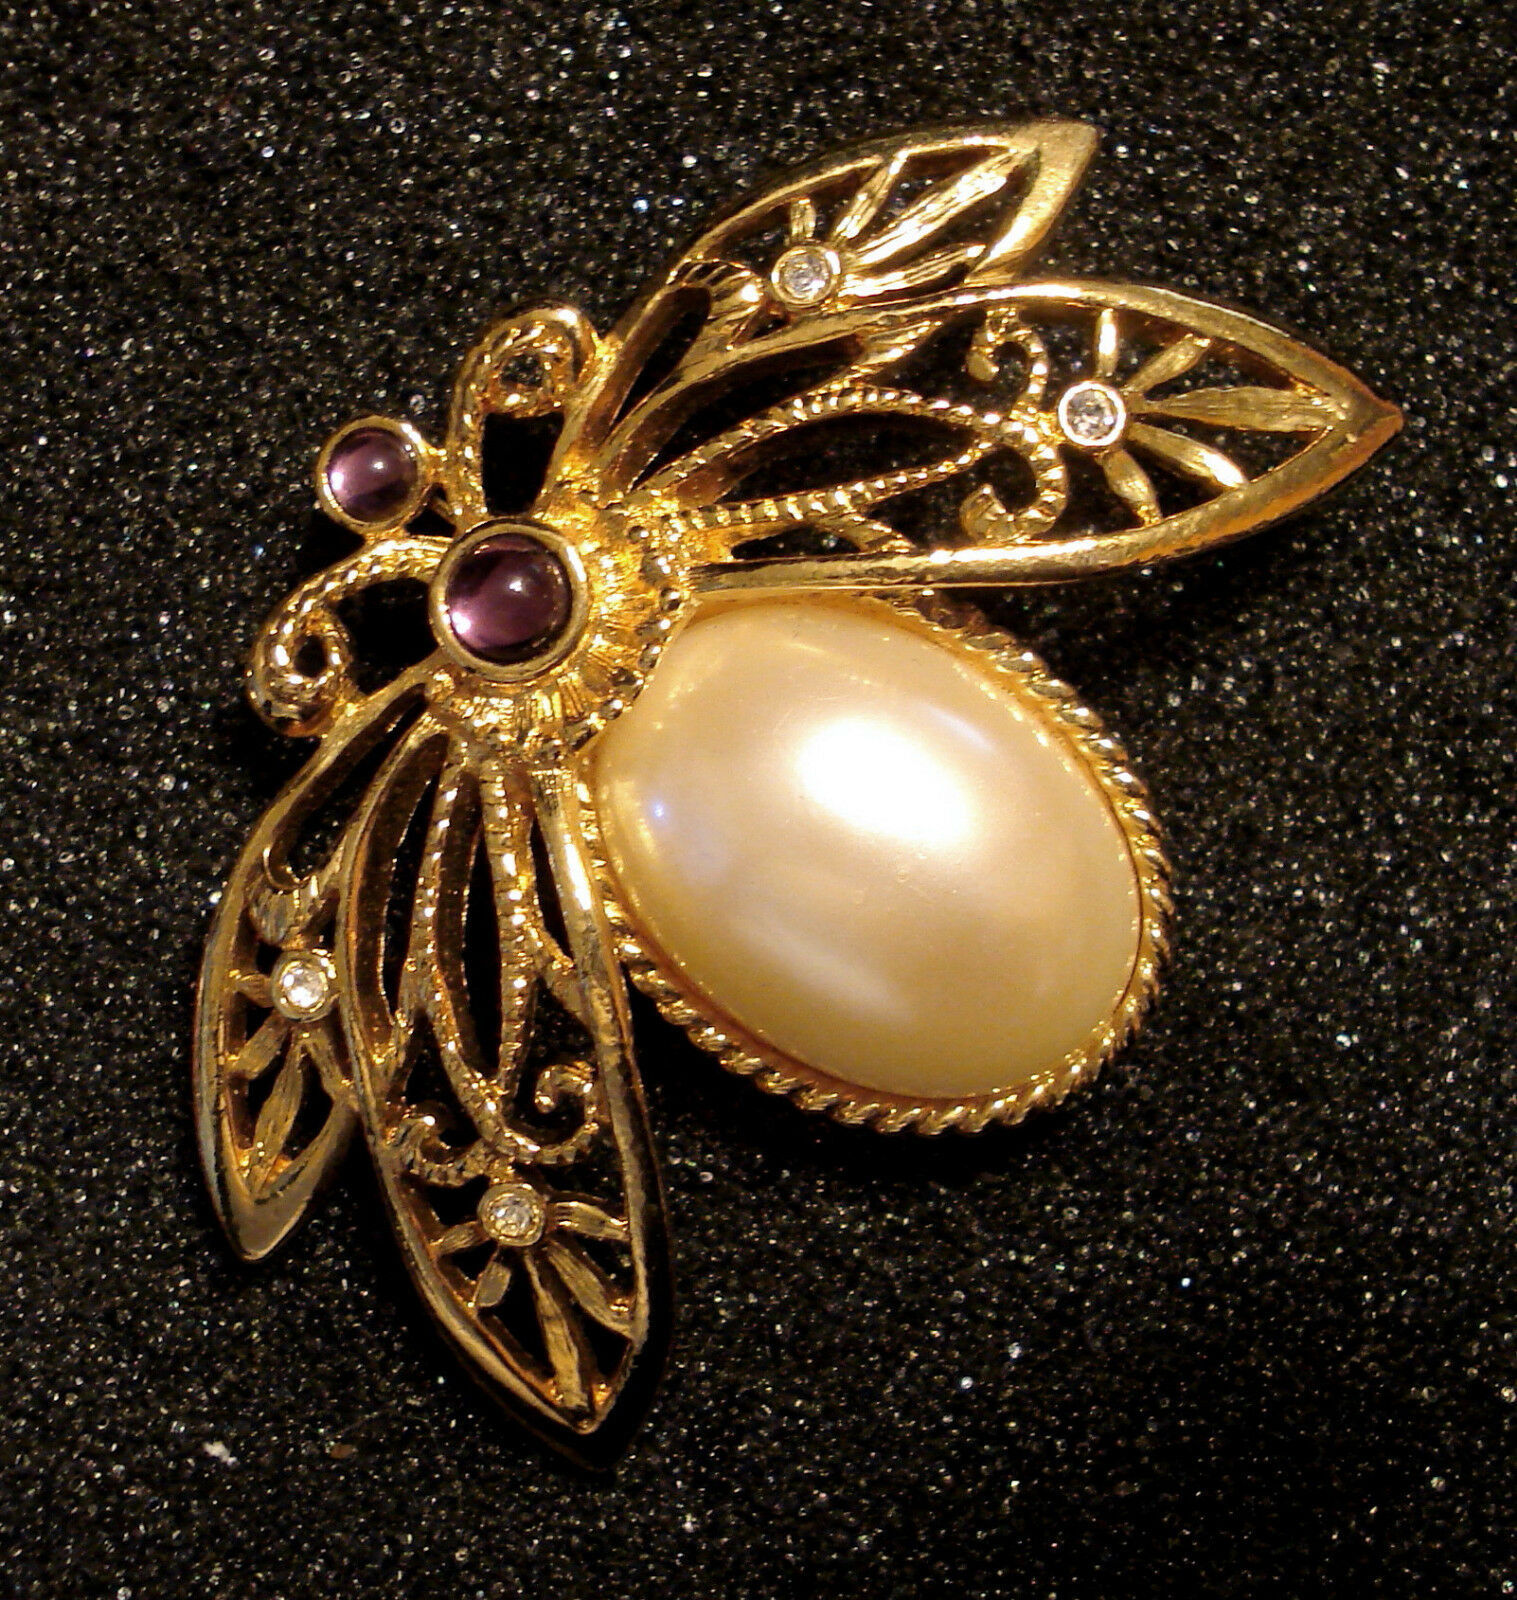 Primary image for Avon Natures Flight Pin Gold Plated Faux Pearl Cab Beetle Lapel Brooch VTG 1990s